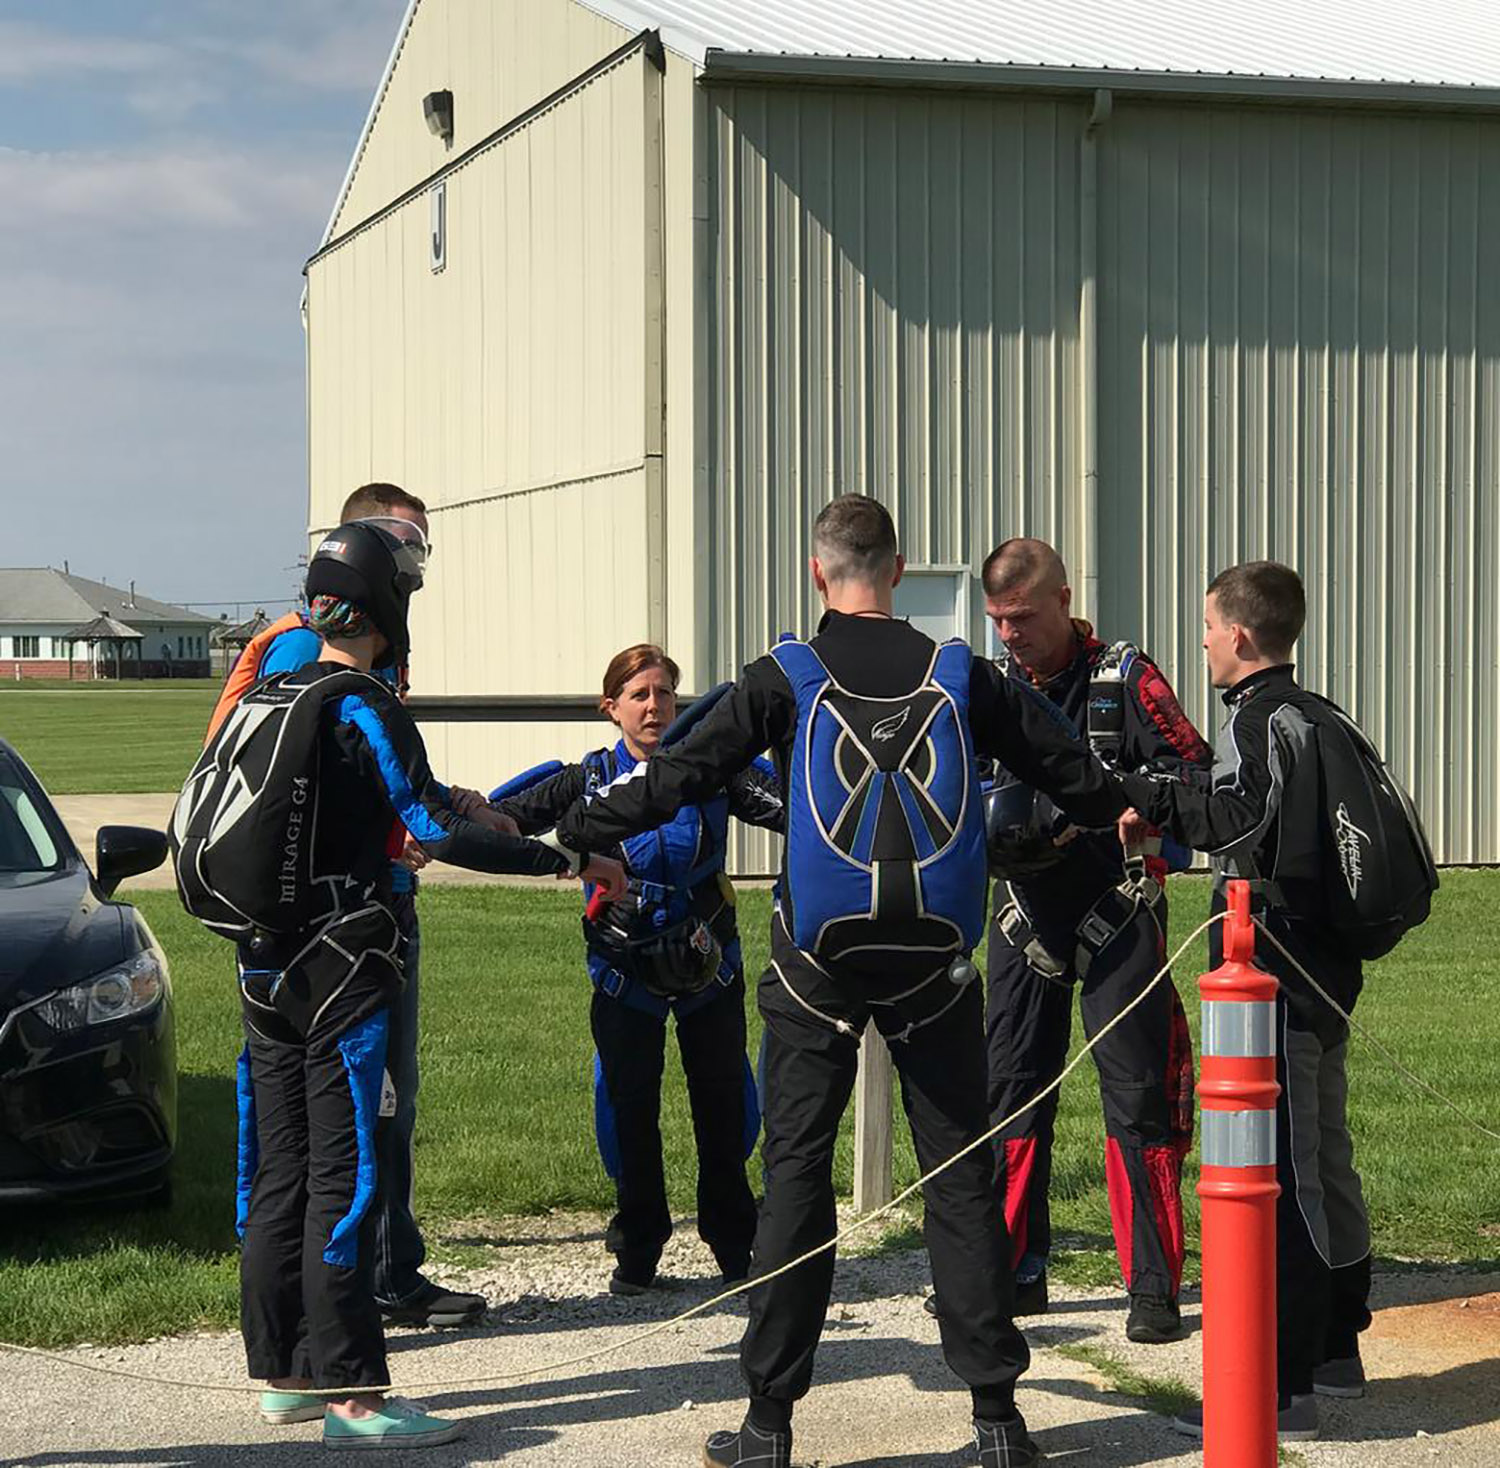 Experienced skydivers practice